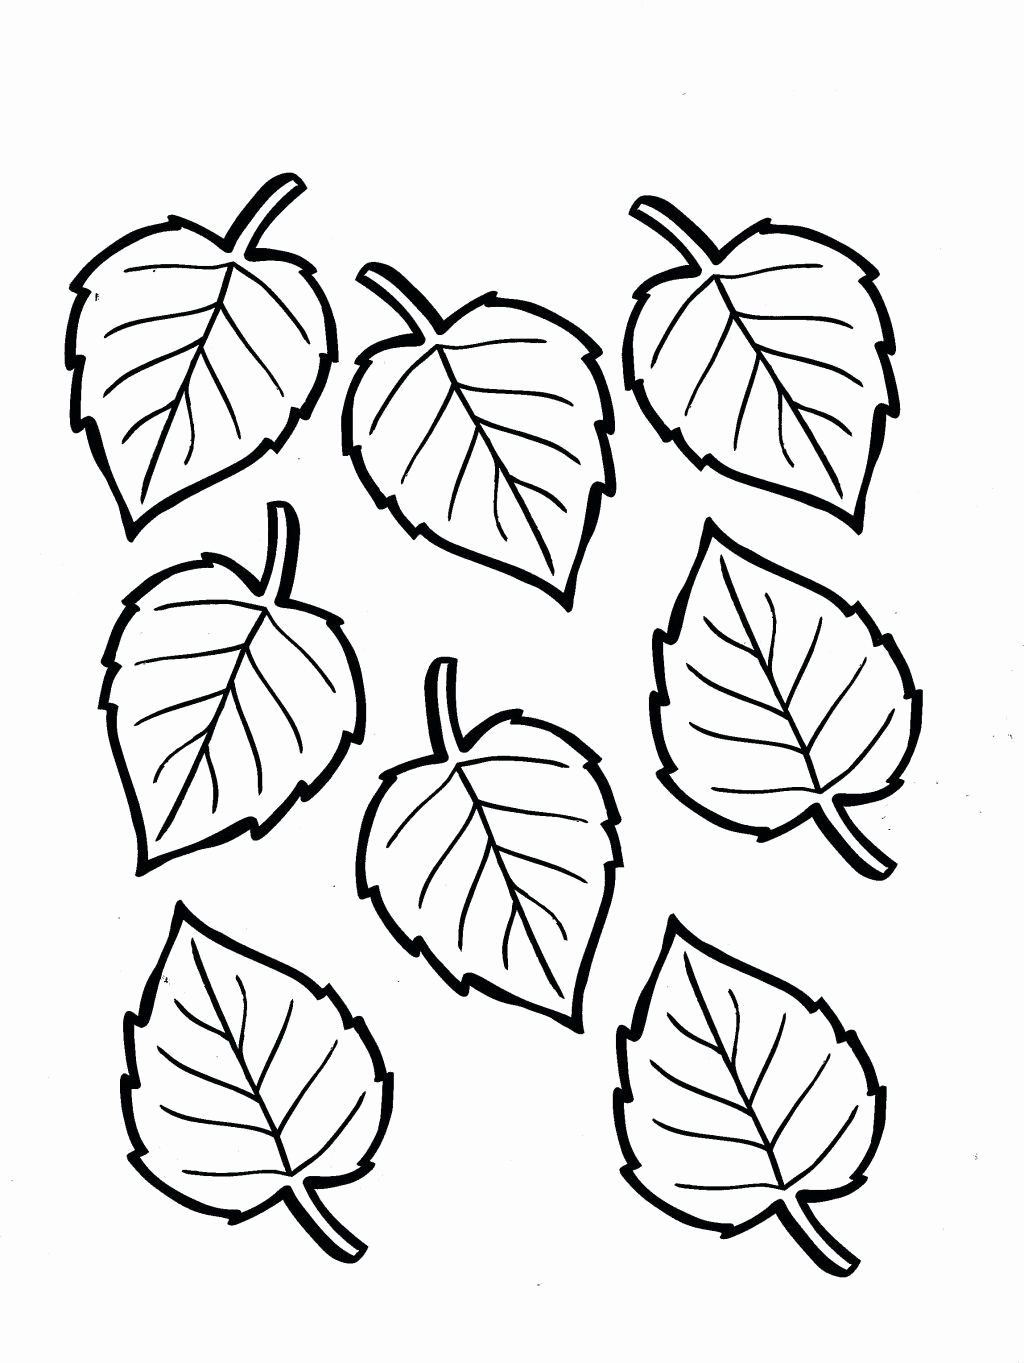 leaf coloring pages maple leaves coloring page fall illustration abcteach leaf coloring pages